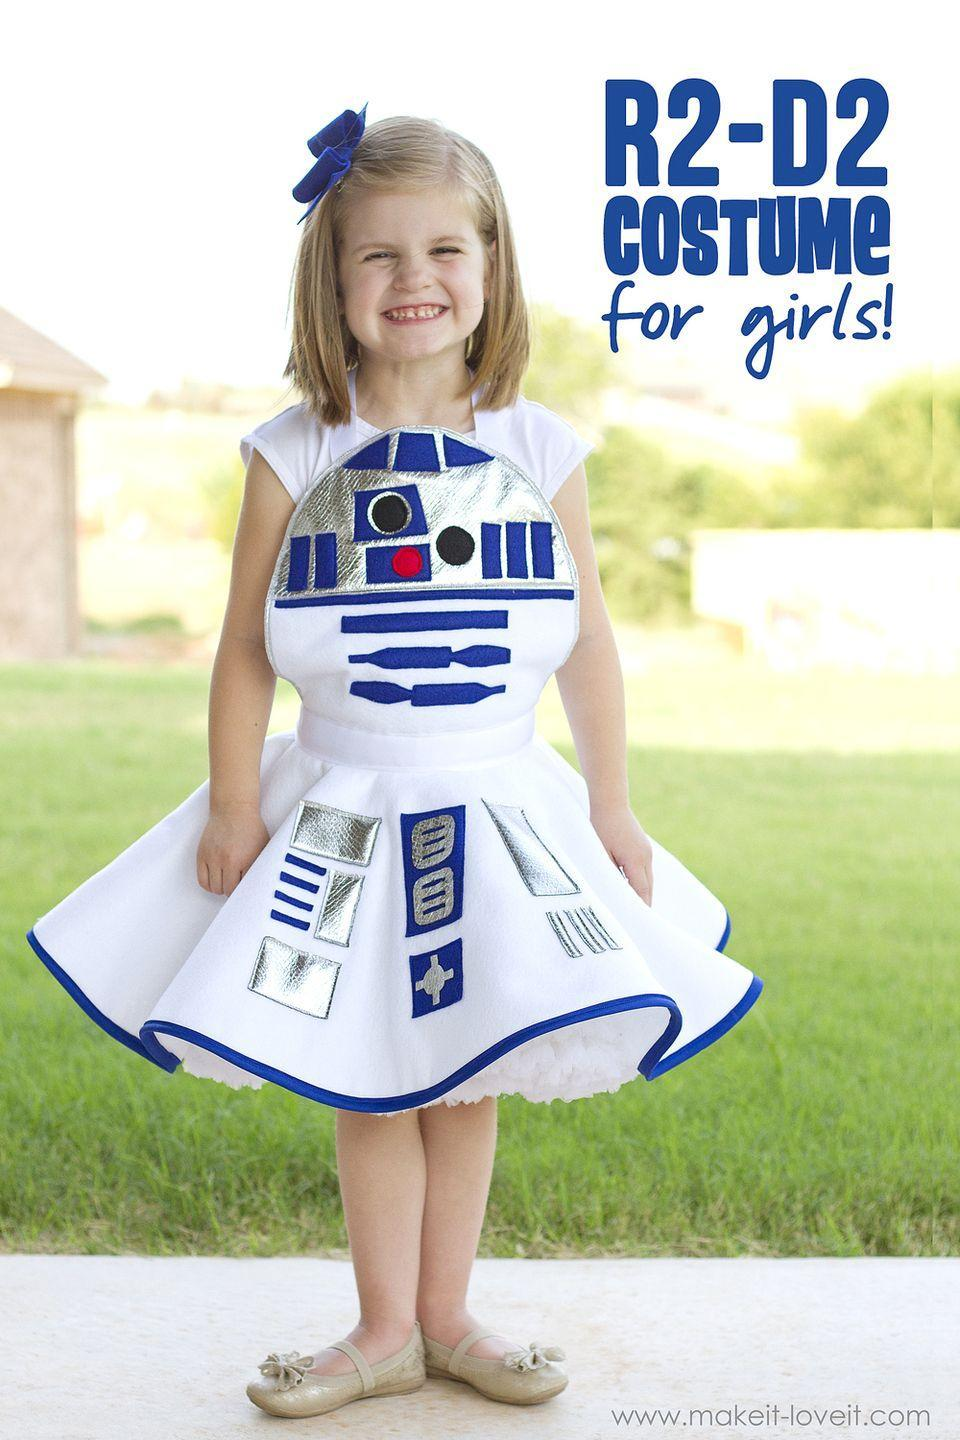 """<p>The force will be with your little one this Halloween when you DIY this adorable skirted R2D2 costume.</p><p><strong>See more at <a href=""""https://makeit-loveit.com/star-wars-r2-d2-dress-costume-for-girls-plus-one-to-give-away"""" rel=""""nofollow noopener"""" target=""""_blank"""" data-ylk=""""slk:Make It & Love It"""" class=""""link rapid-noclick-resp"""">Make It & Love It</a>. </strong></p><p><a class=""""link rapid-noclick-resp"""" href=""""https://go.redirectingat.com?id=74968X1596630&url=https%3A%2F%2Fwww.walmart.com%2Fip%2FHigh-Quality-Acrylic-Felt-by-the-Yard-72-Wide-X-1-YD-Long-White%2F983442763&sref=https%3A%2F%2Fwww.thepioneerwoman.com%2Fholidays-celebrations%2Fg32645069%2F80s-halloween-costumes%2F"""" rel=""""nofollow noopener"""" target=""""_blank"""" data-ylk=""""slk:SHOP WHITE FELT"""">SHOP WHITE FELT</a></p>"""